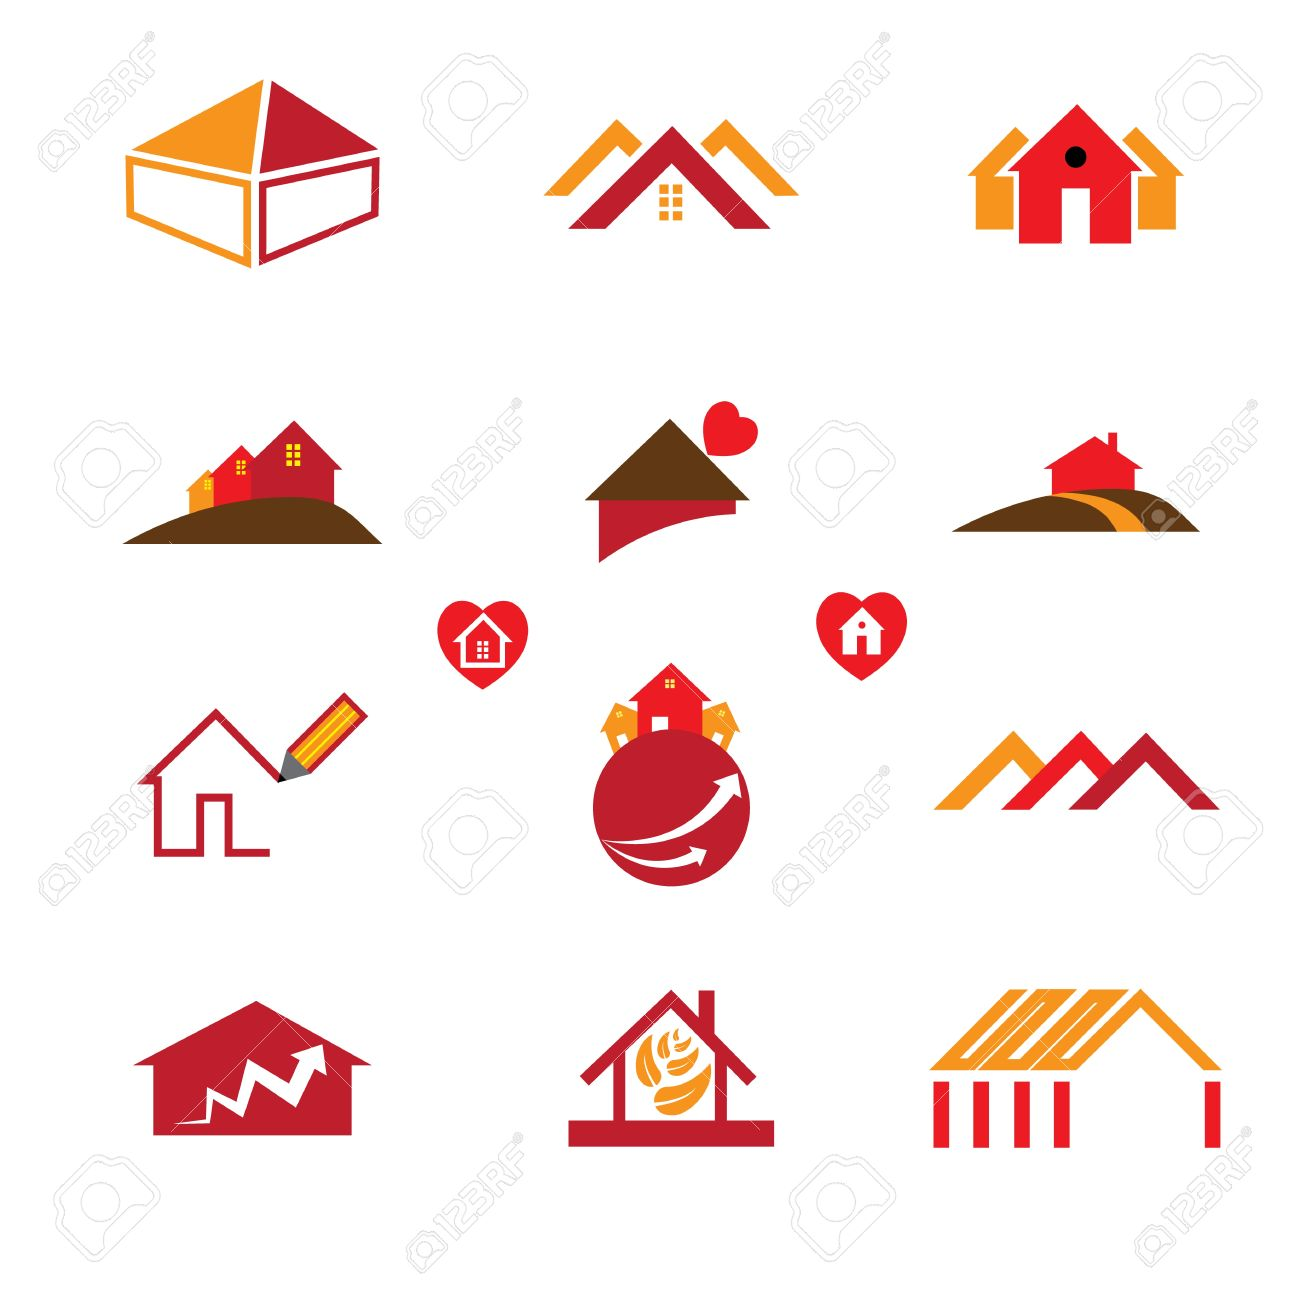 House and office logo icons for real estate business requirements house and office logo icons for real estate business requirements like business cards brochures reheart Choice Image